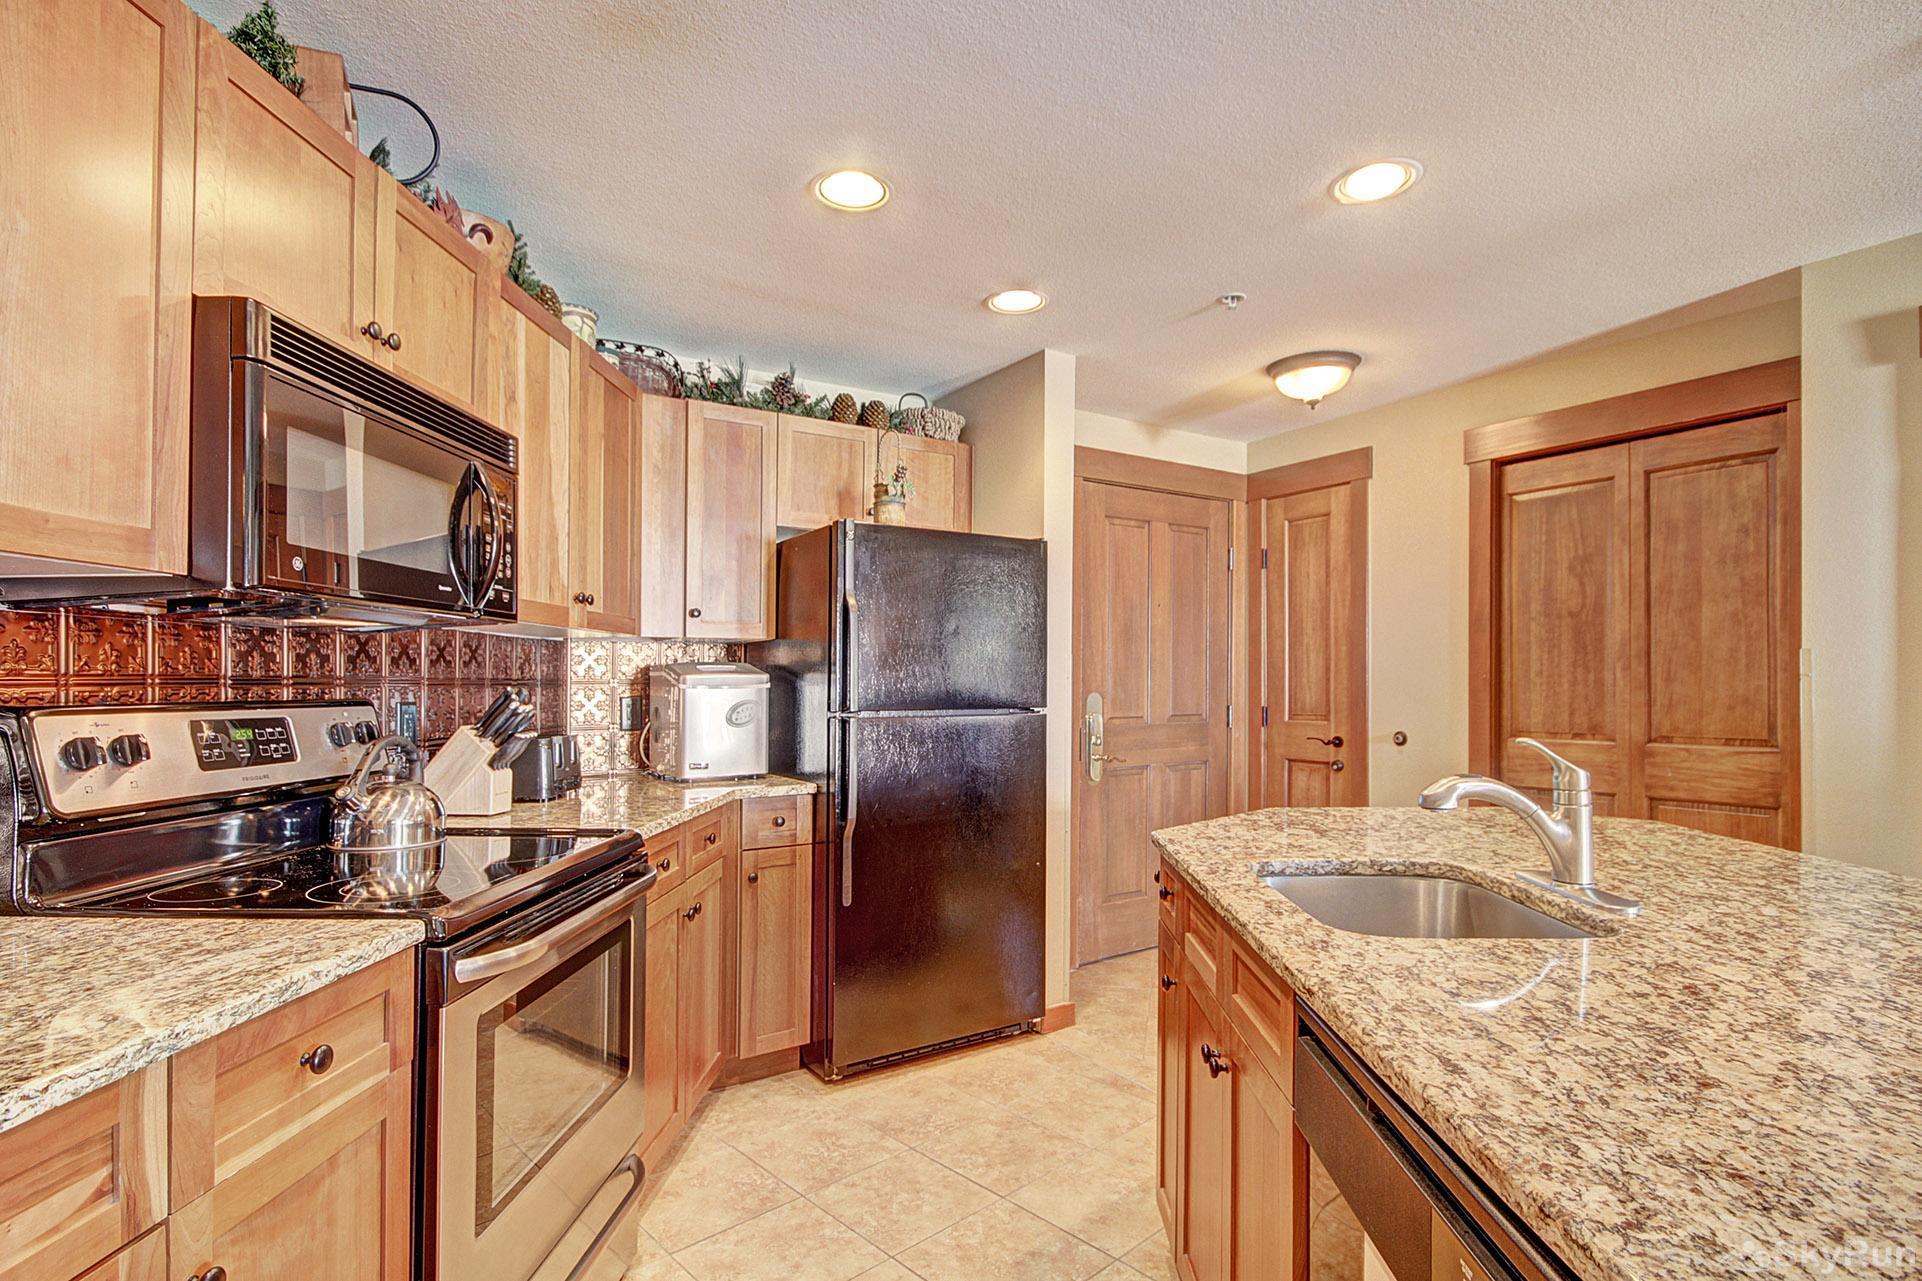 CO422 Copper One Lodge Fully Equipped Kitchen